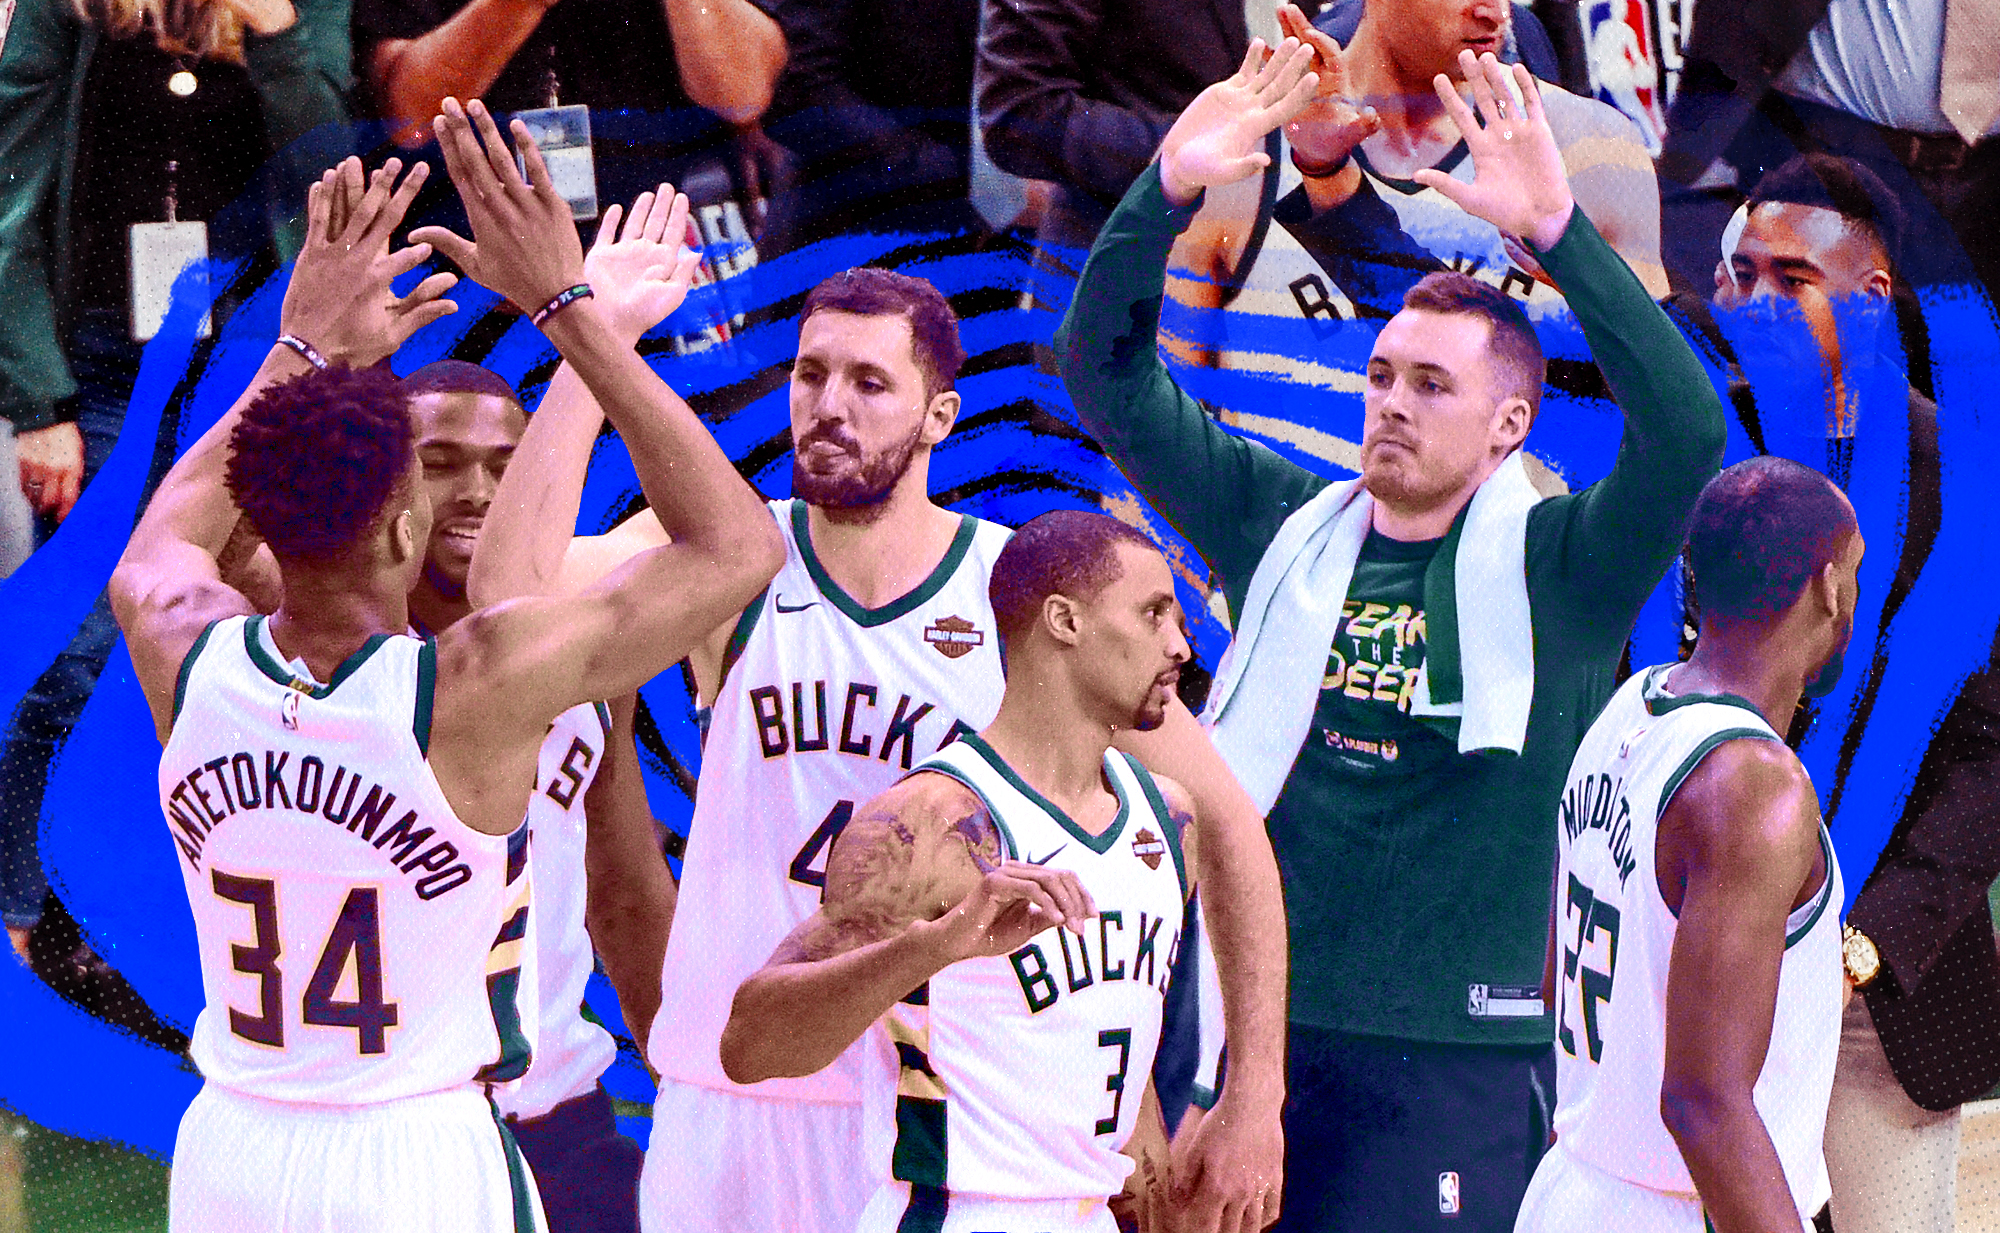 The Bucks have something more powerful than a Superteam